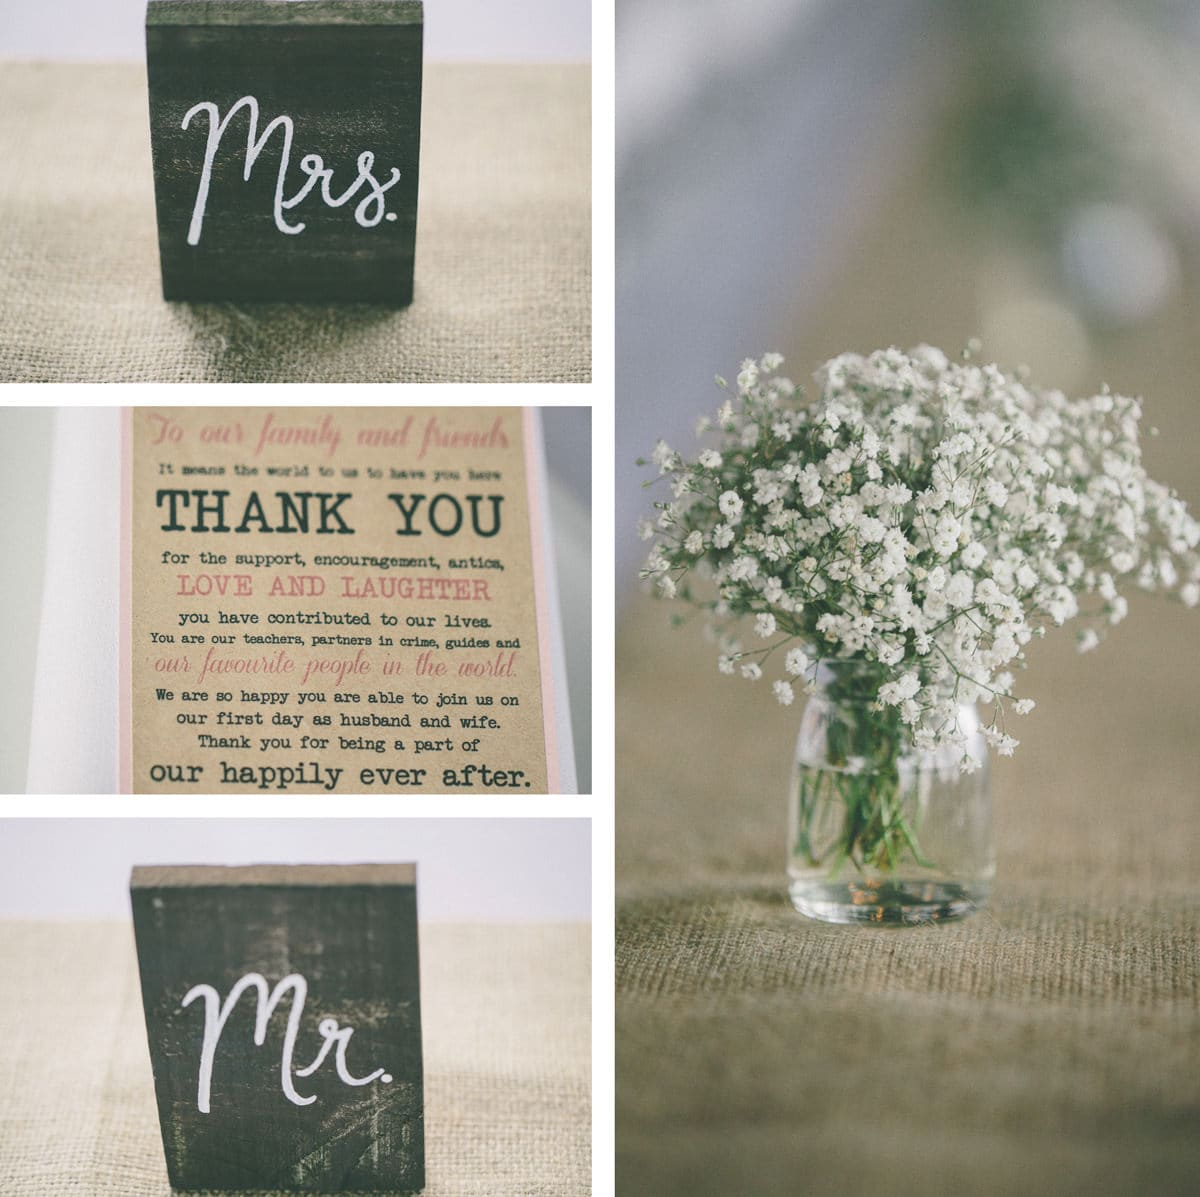 Mr and mrs signs - rustic wedding decorations in the yarra valley